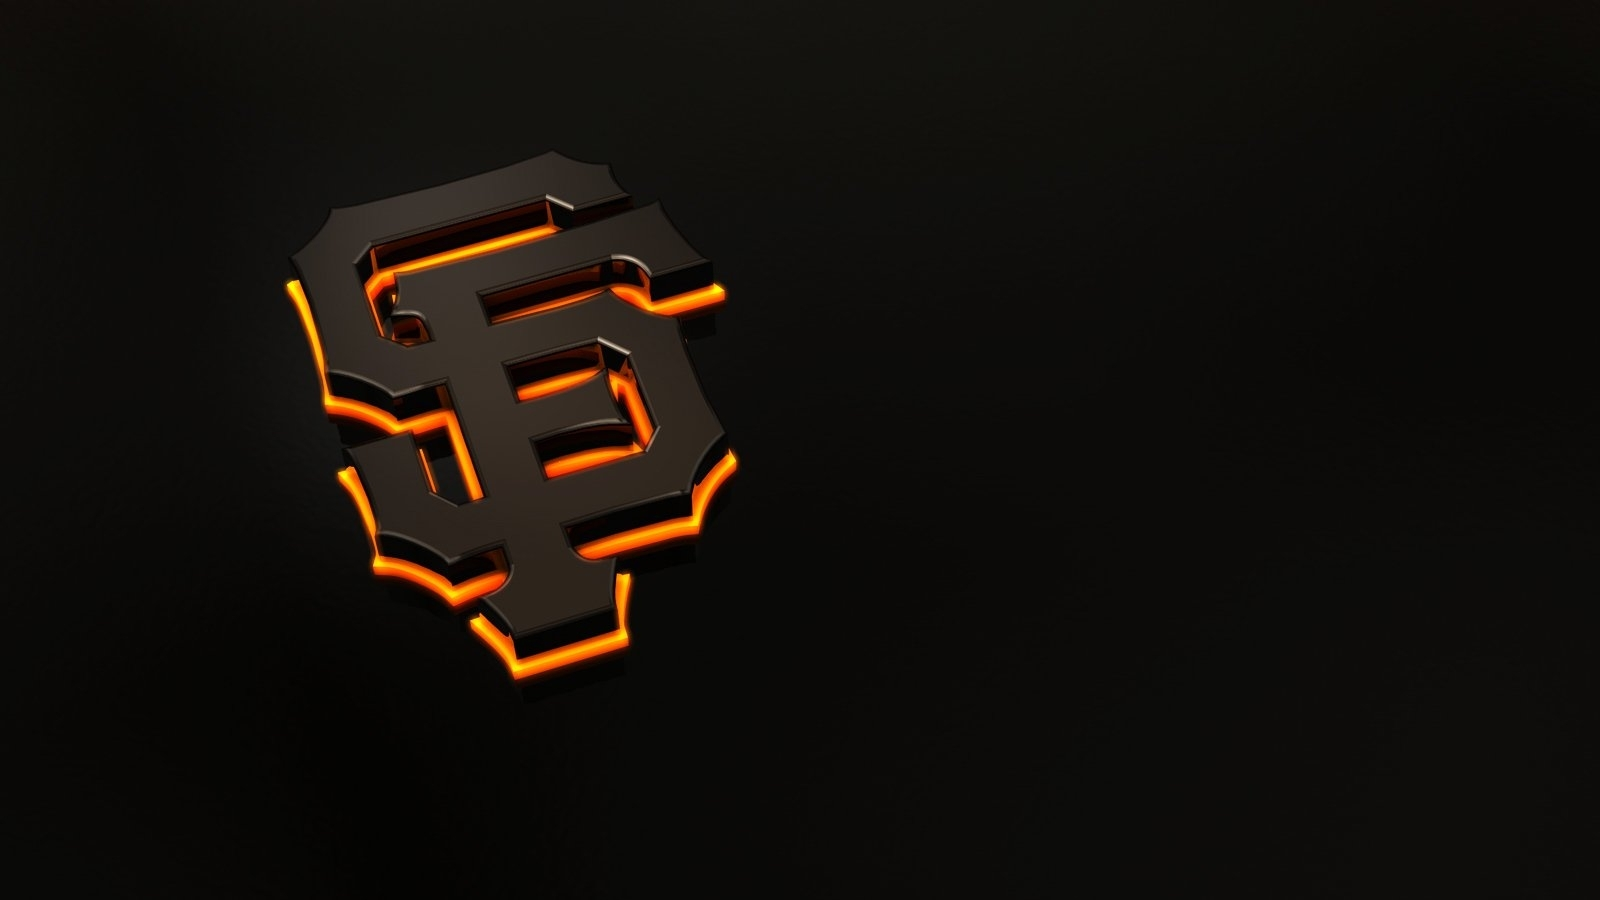 5 san francisco giants hd wallpapers | background images - wallpaper